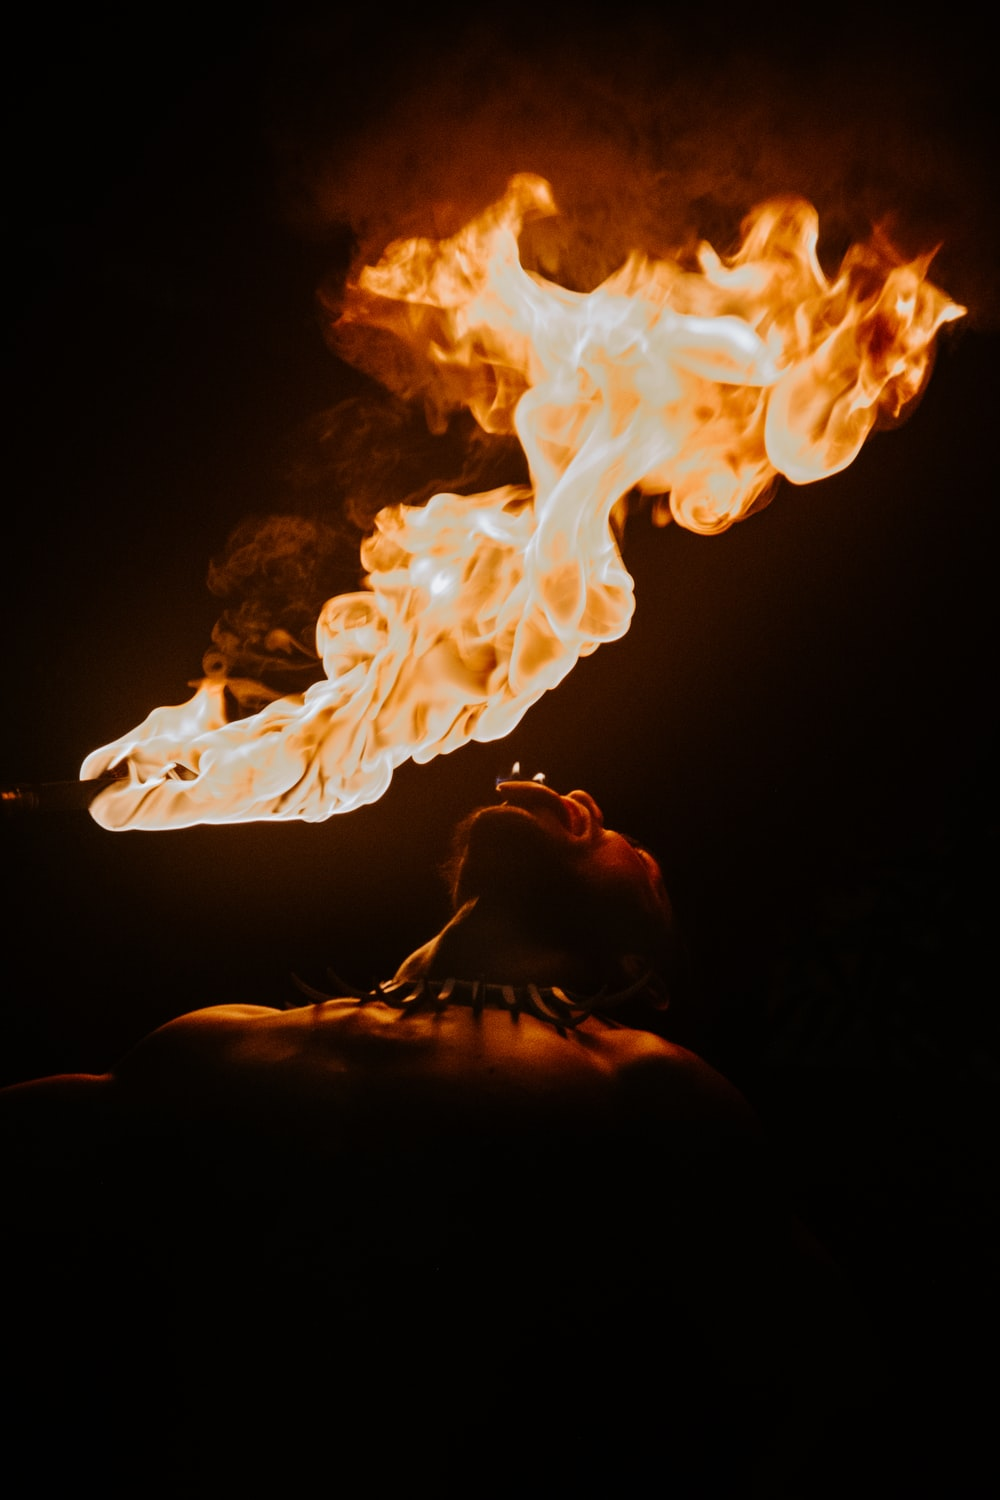 fire in dark room with black background